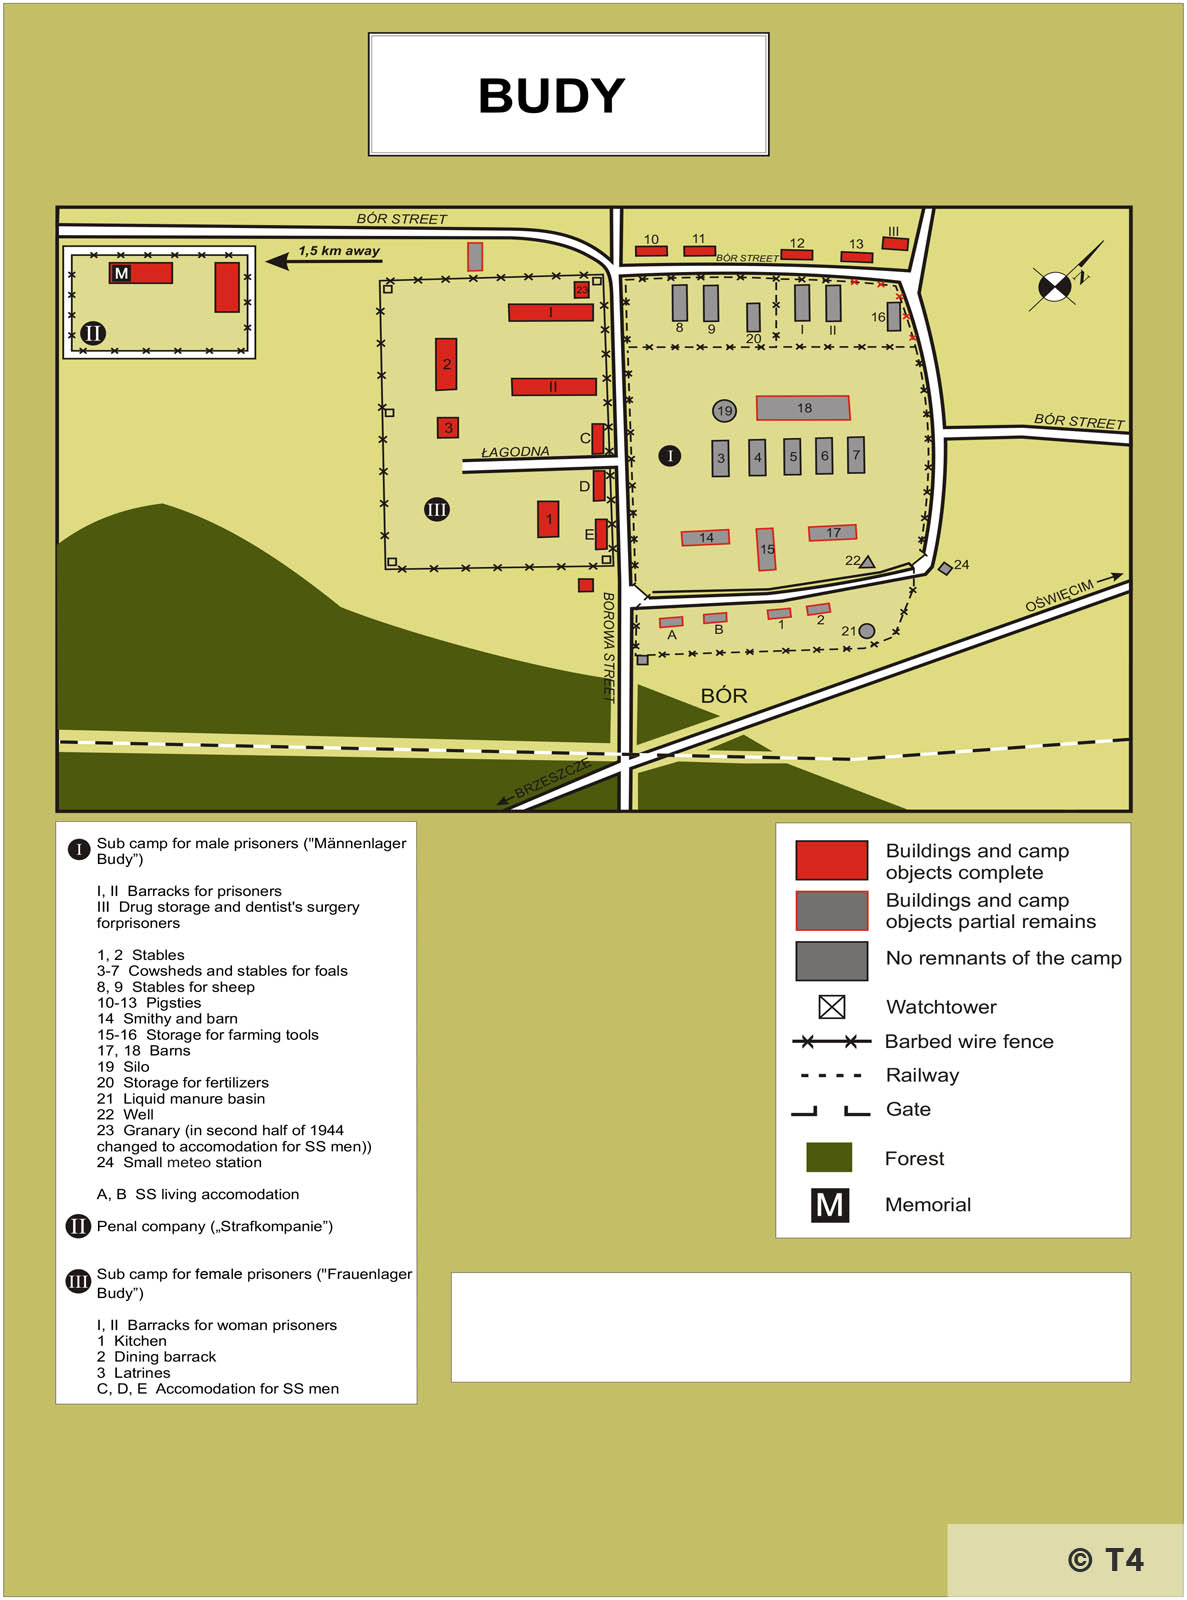 Map of Budy sub camp. T4